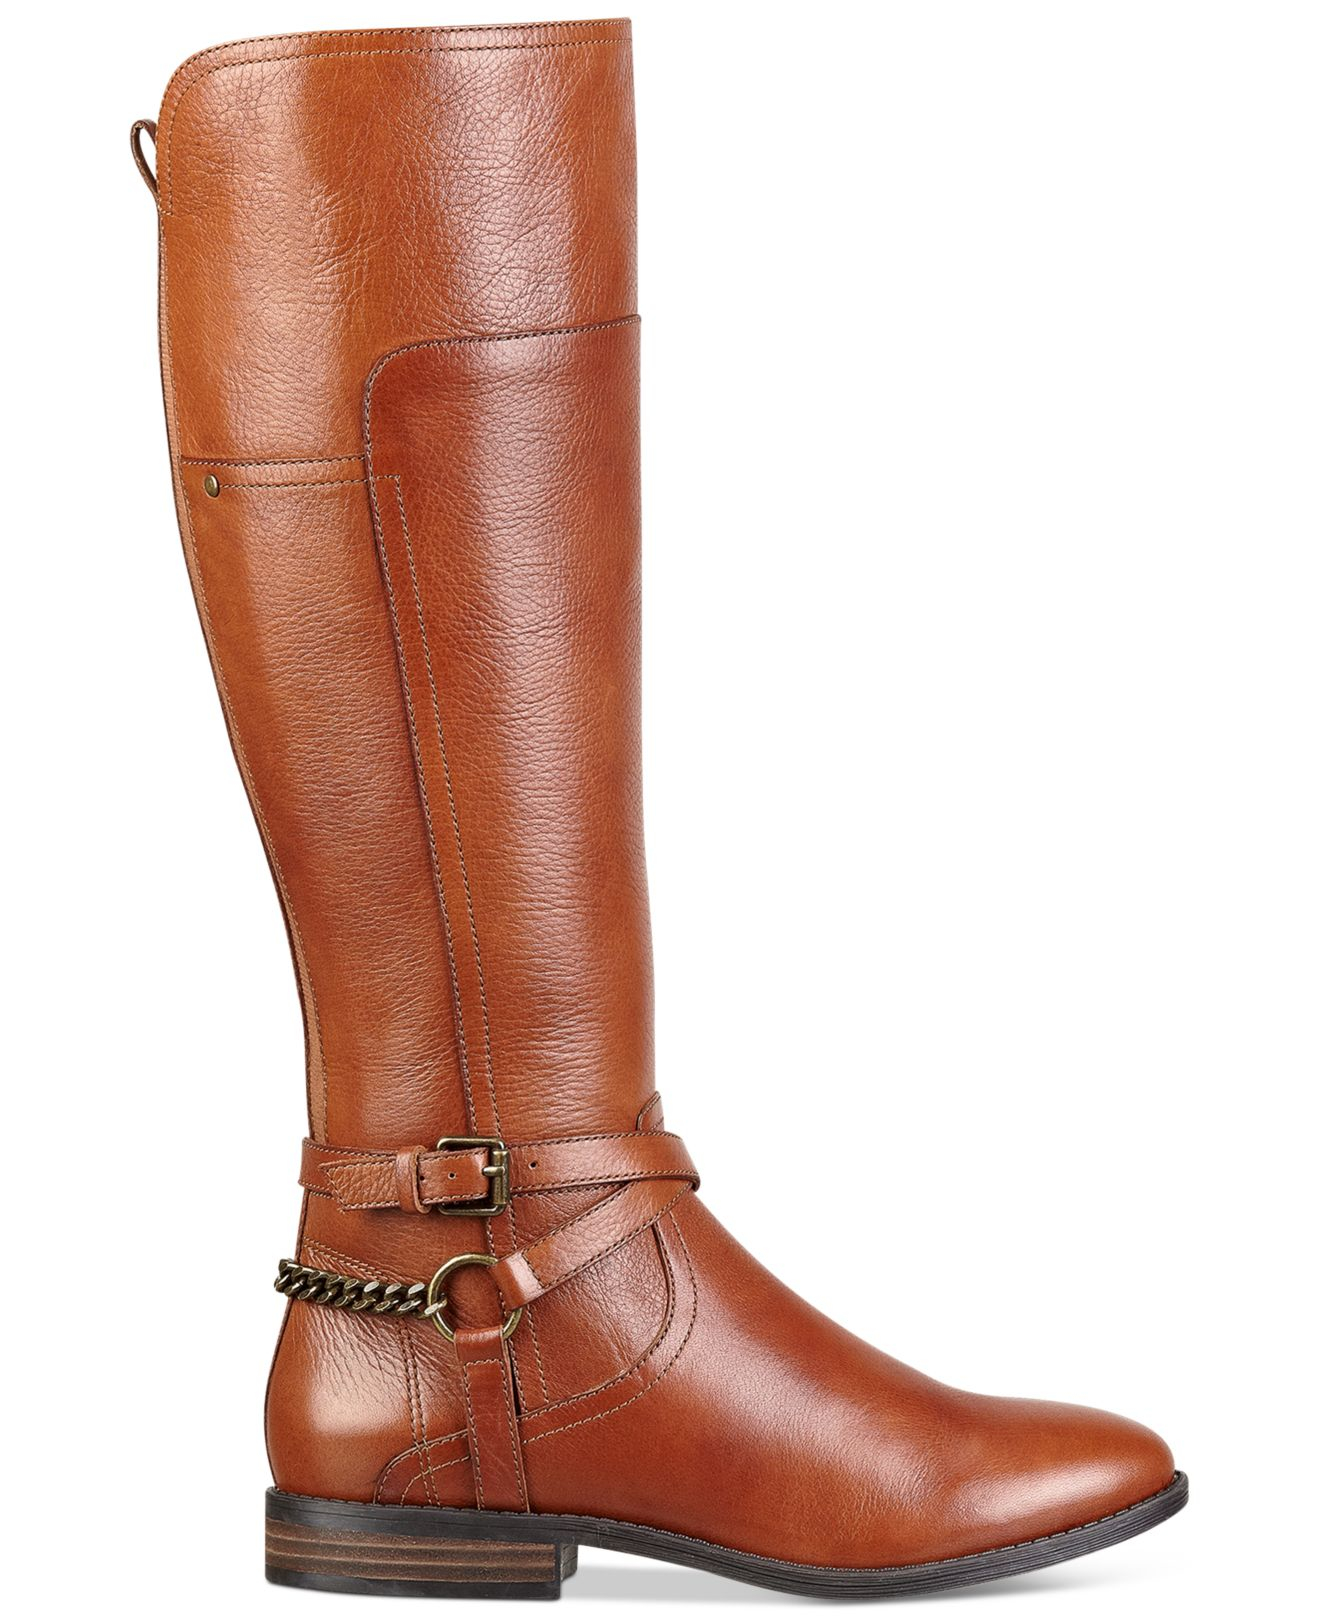 Vitalo Womens Low Heel Wide Calf Knee High Zip up Buckle Horse Riding Boots £ - £ R1Y Womens Ladies Extra Wide Calf (Max Fit 49cm for Size 2 and 56cm for Size 10) Riding Zip Up Elasticated Under.